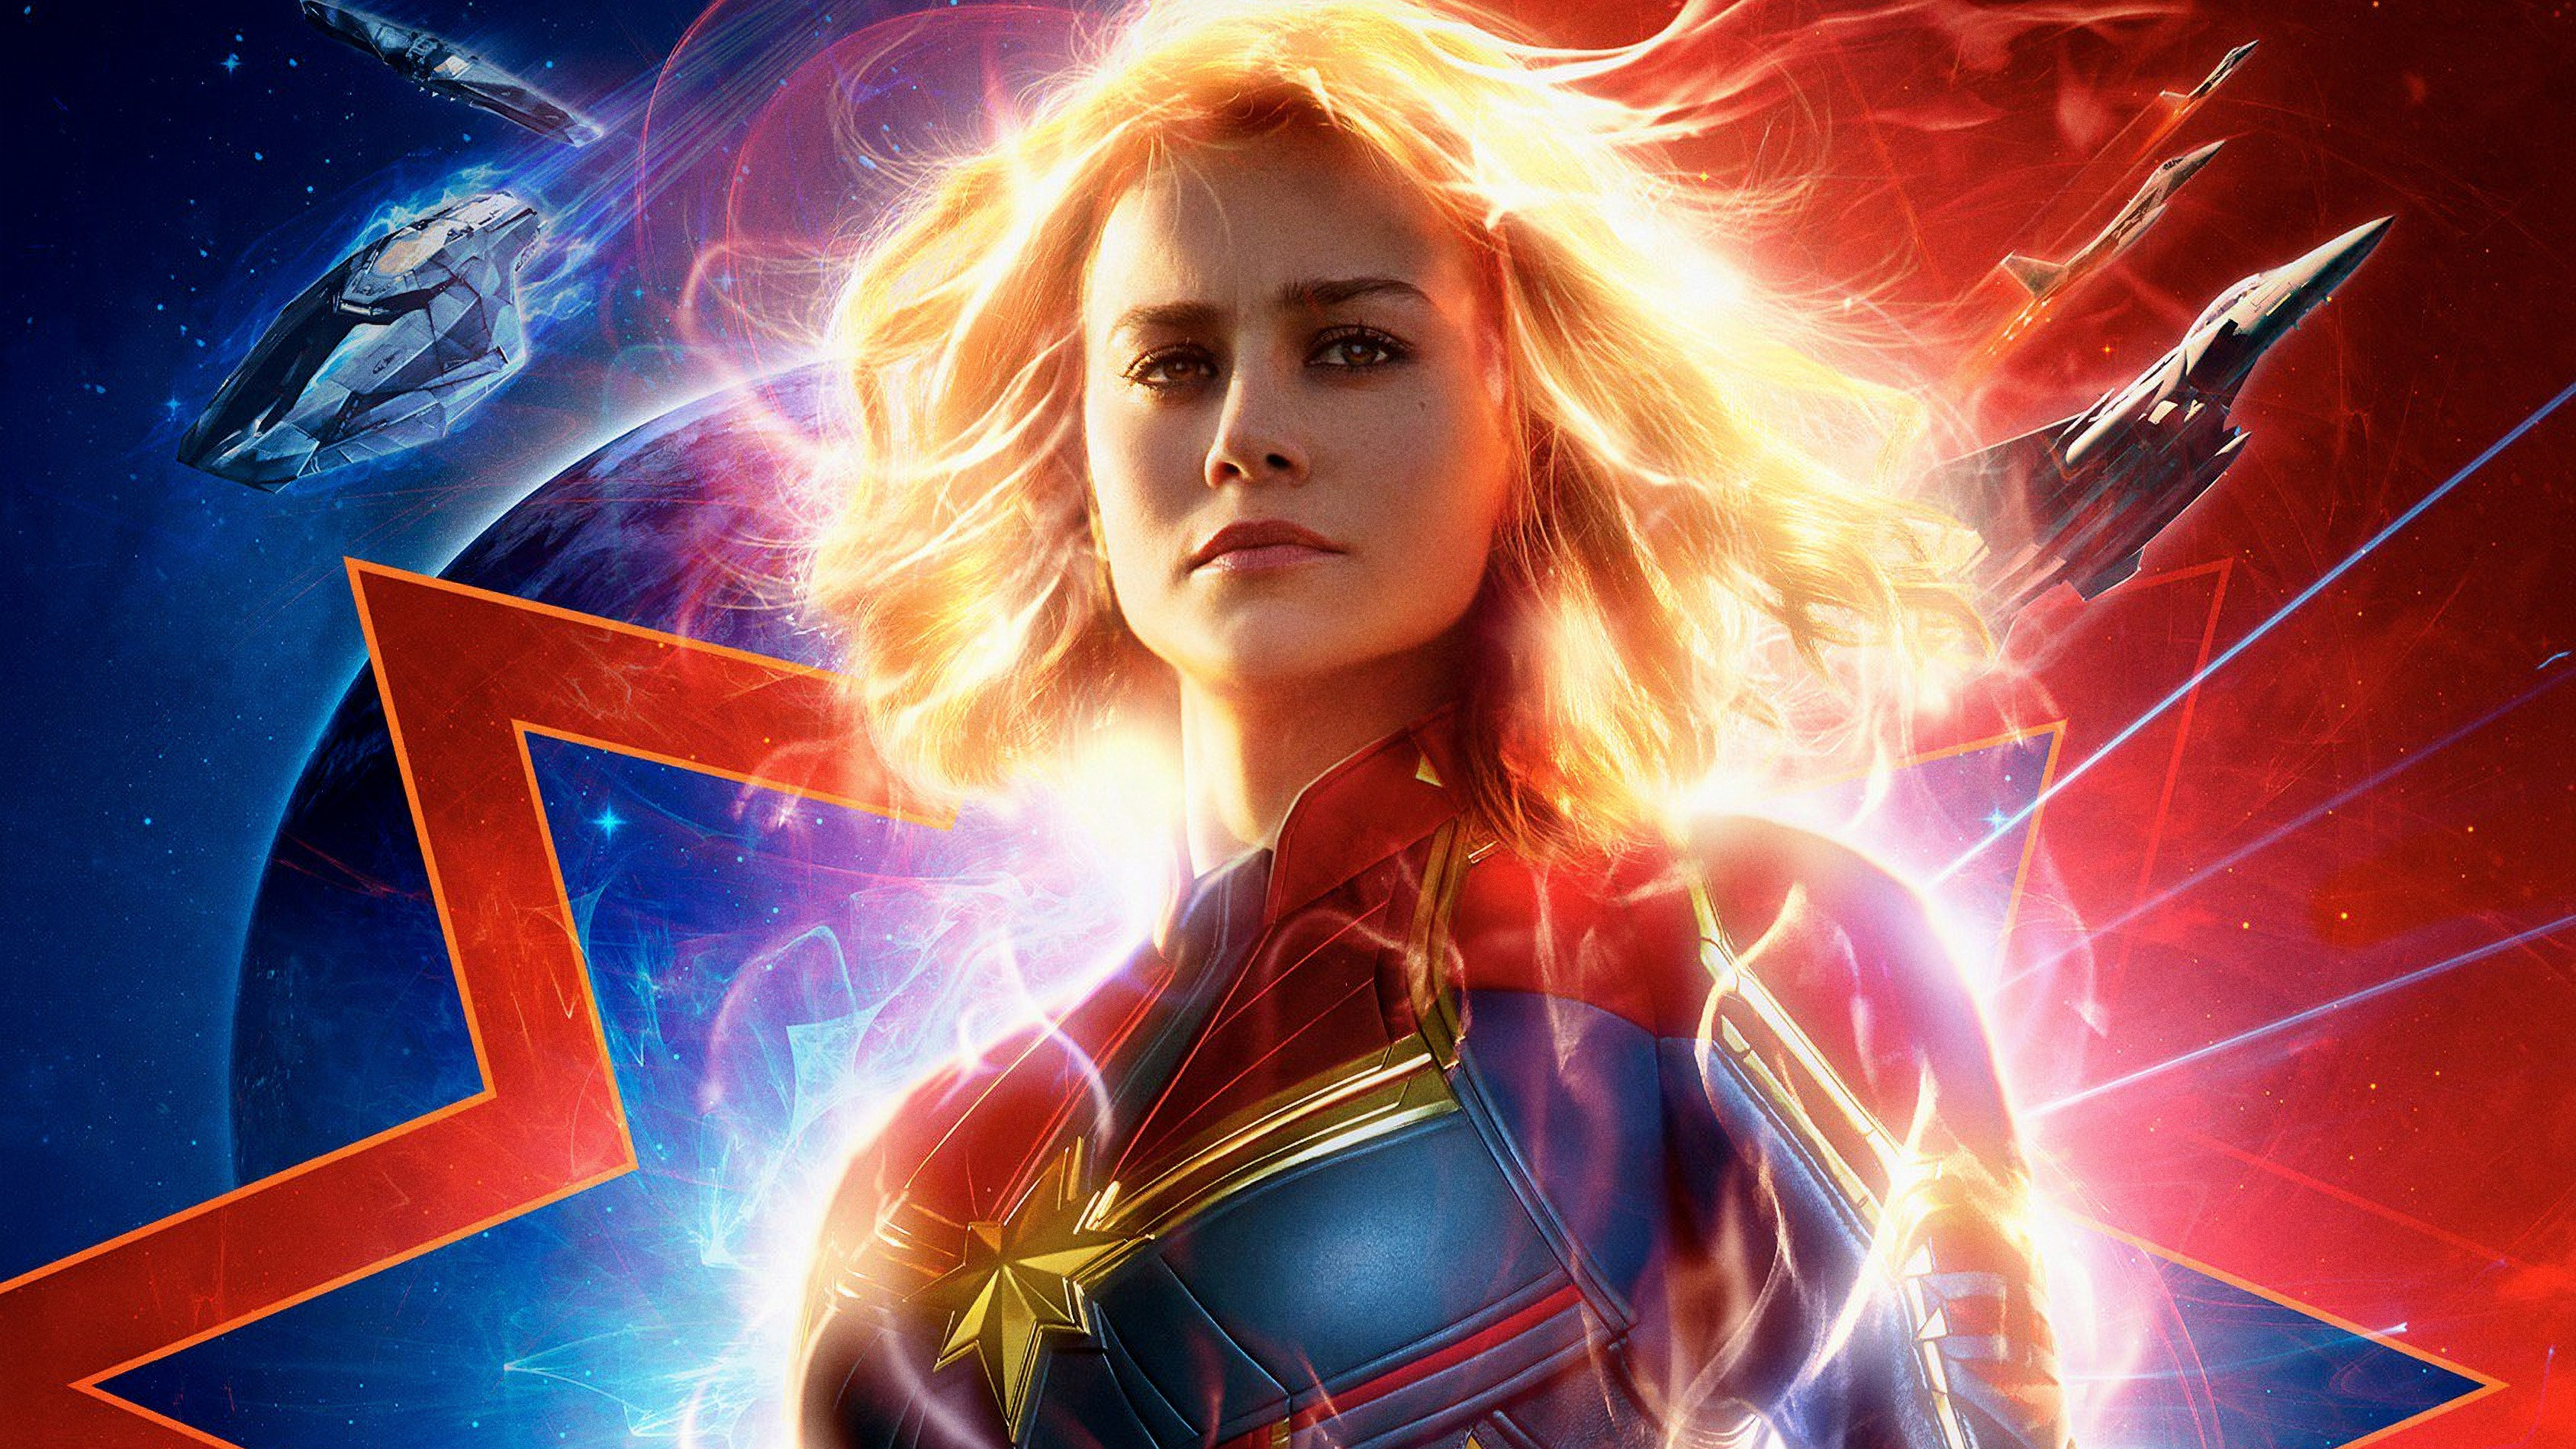 captain marvel movie 2019 4k, hd movies, 4k wallpapers, images